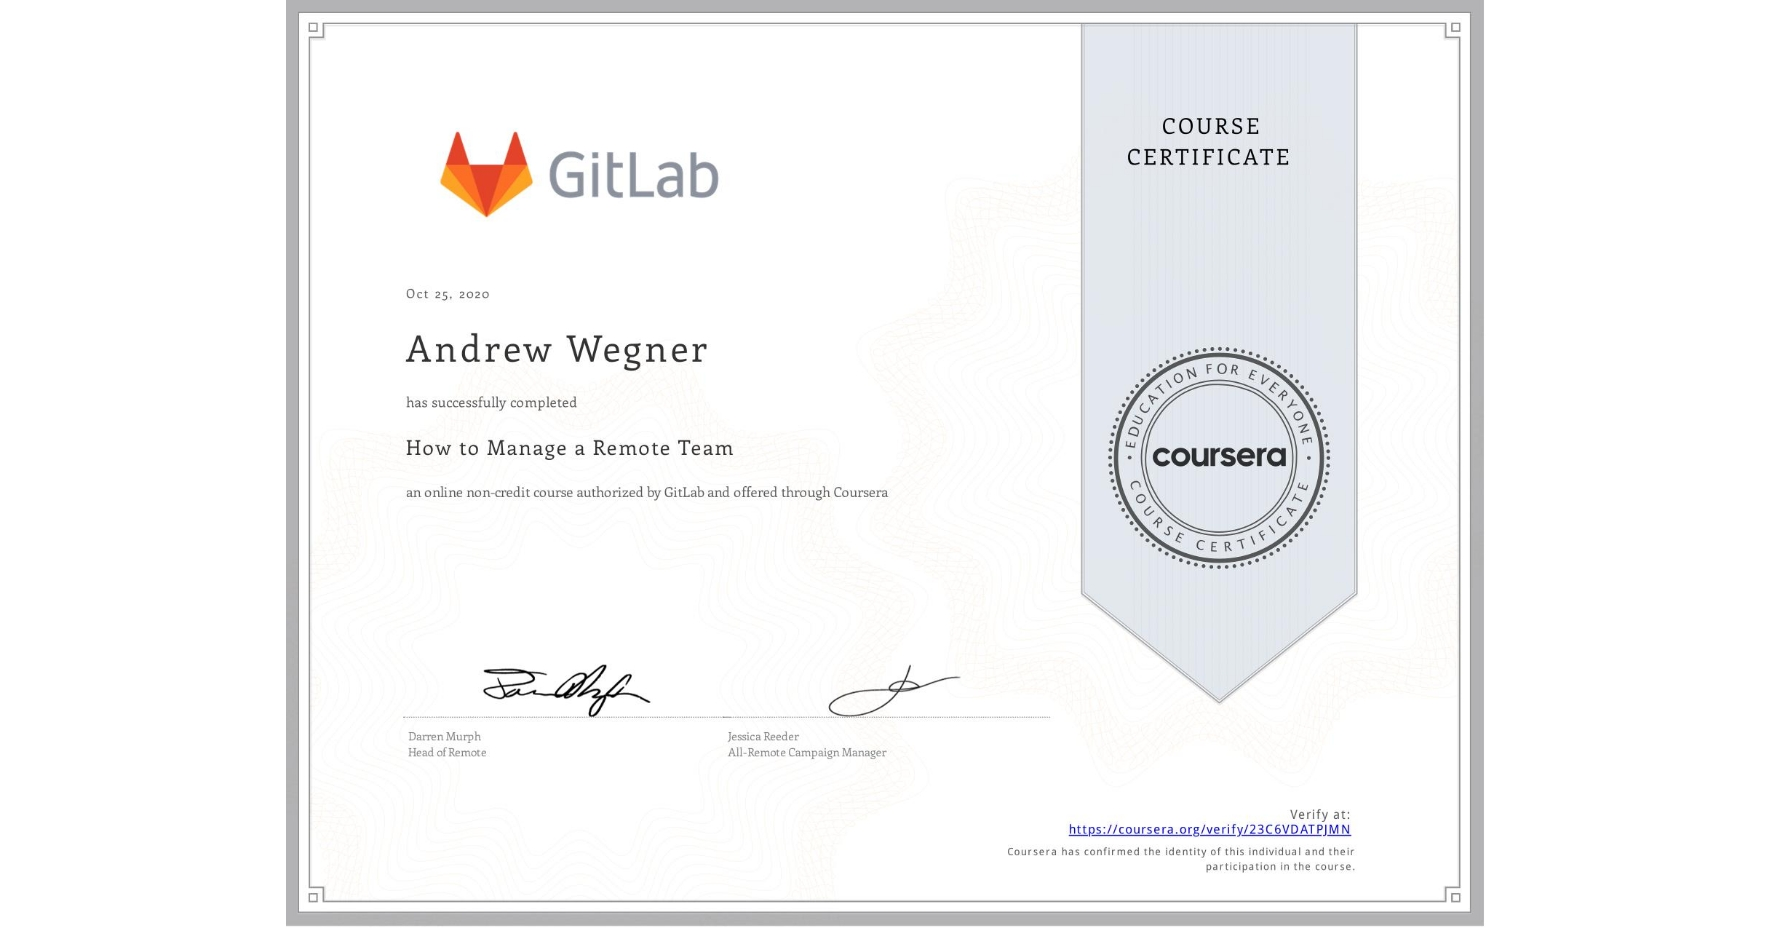 View certificate for Andrew Wegner, How to Manage a Remote Team, an online non-credit course authorized by GitLab and offered through Coursera